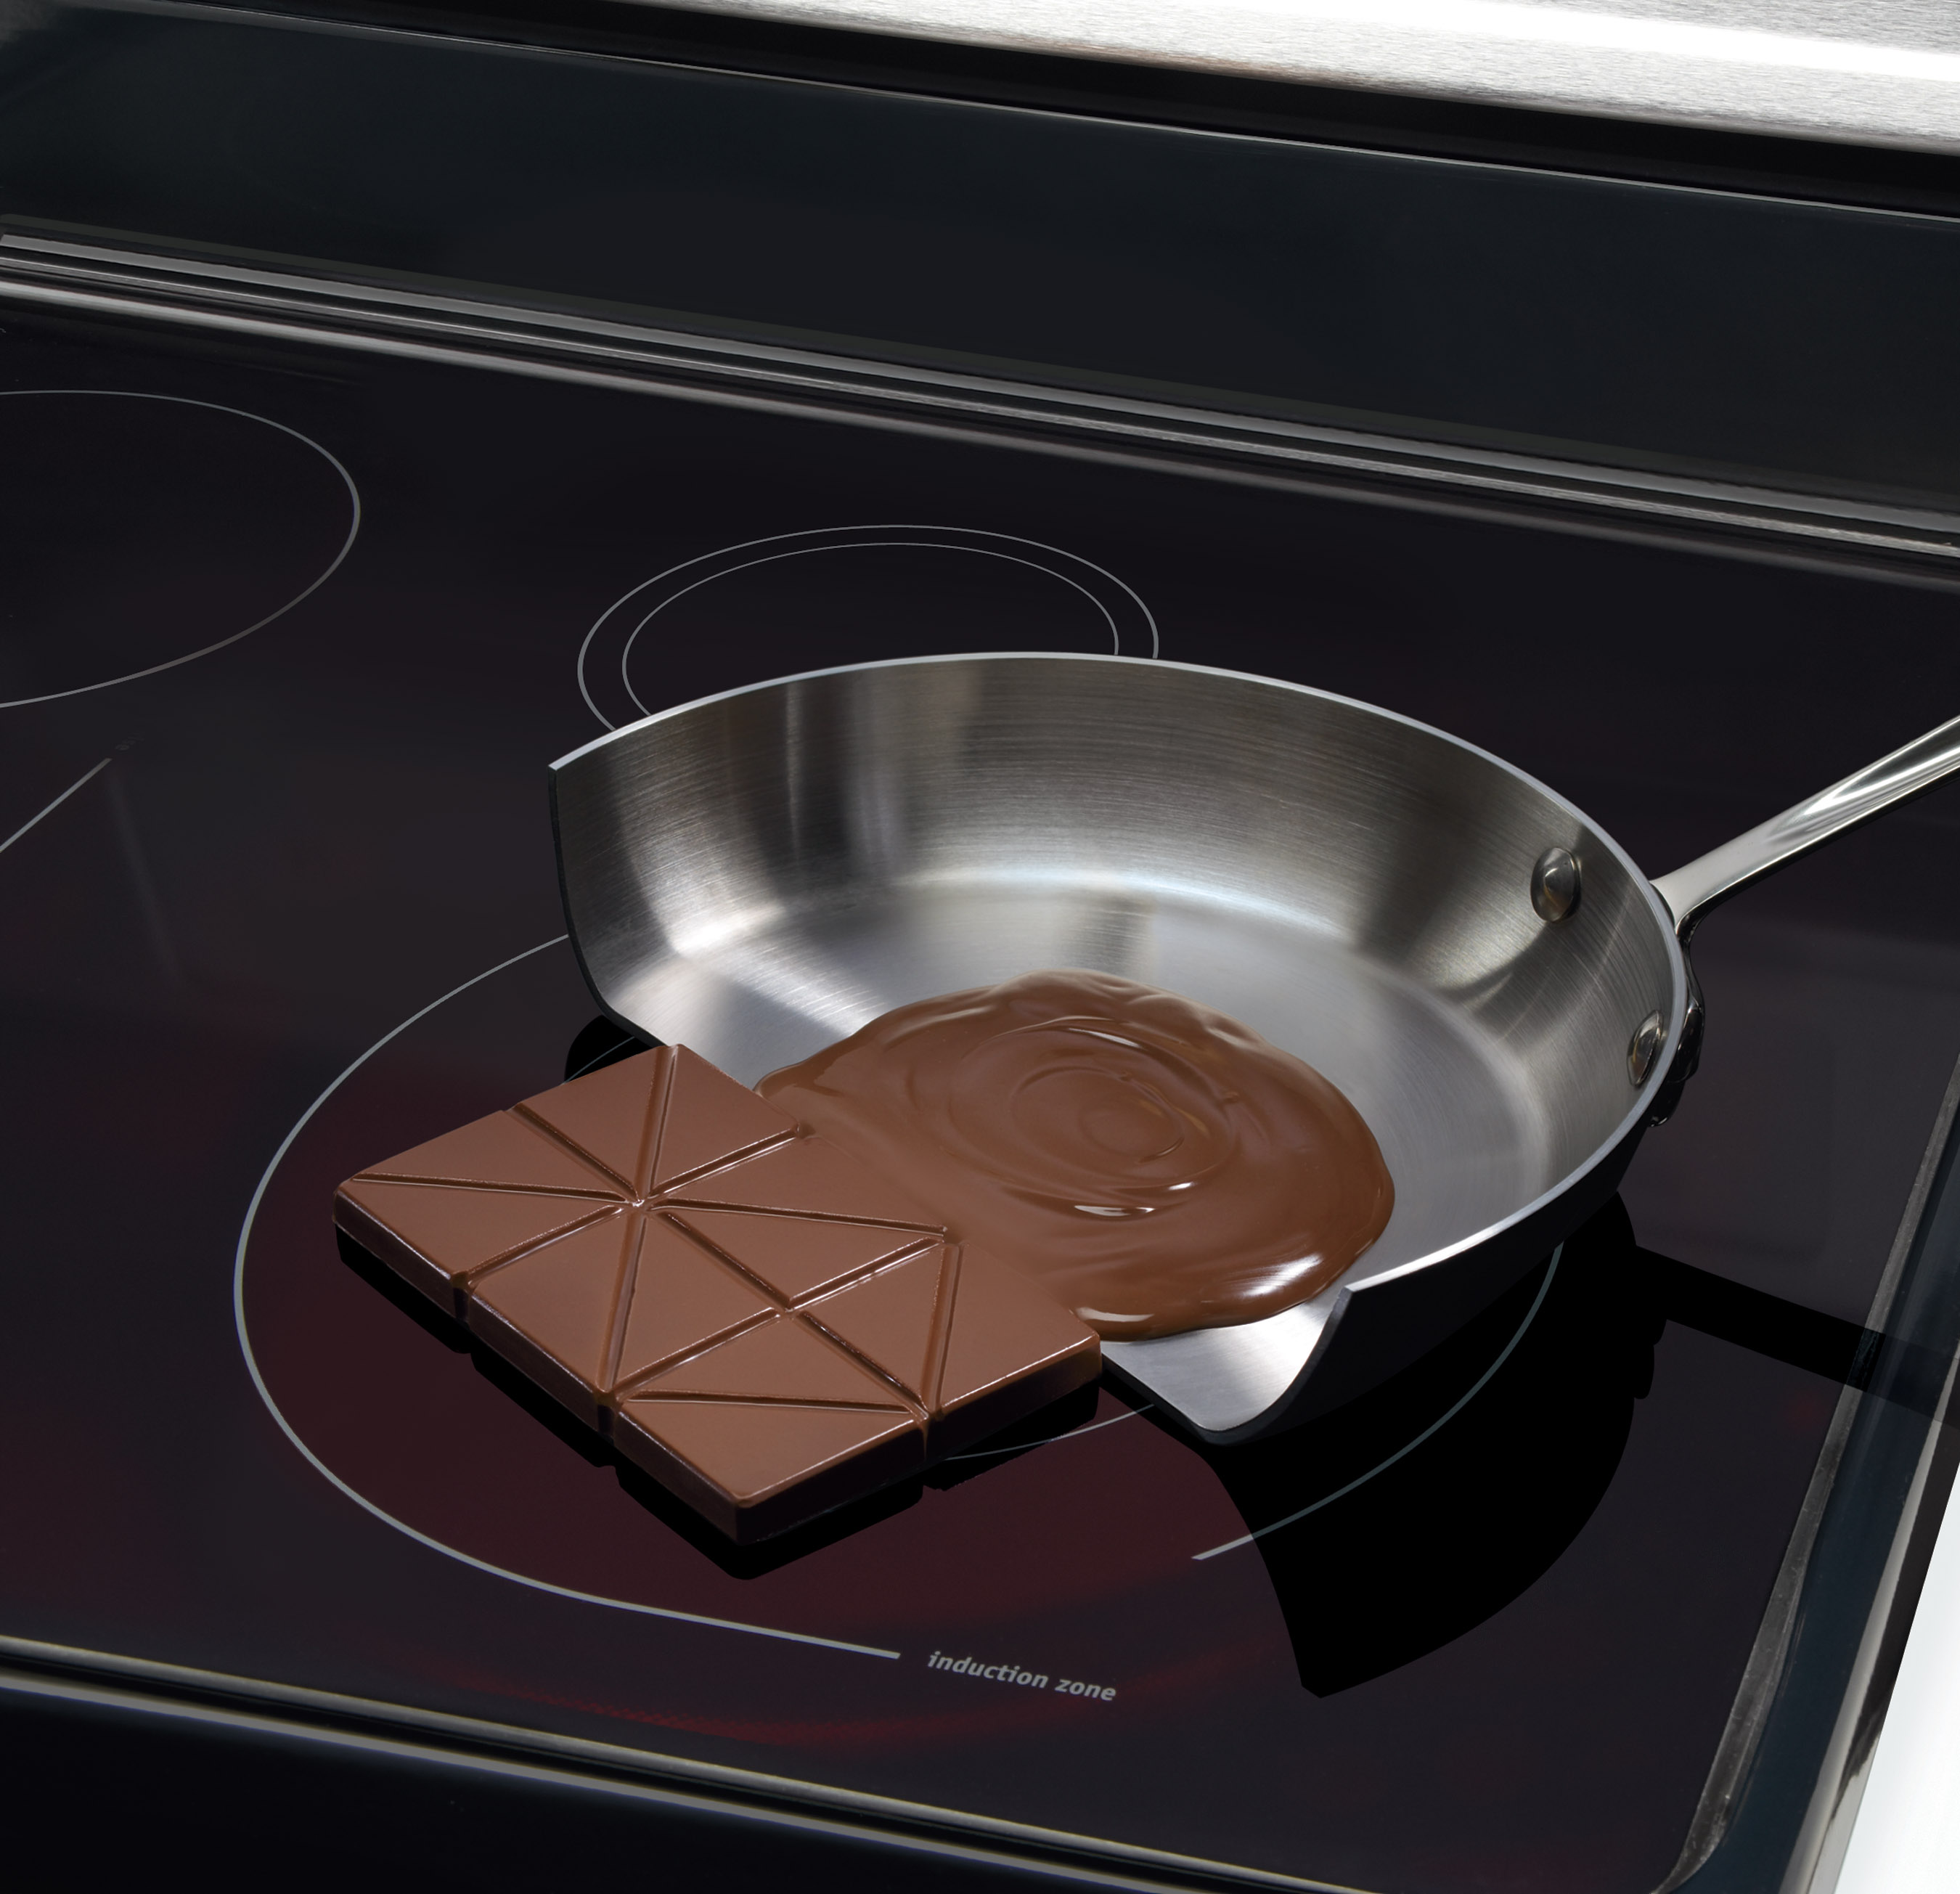 Cuisine Induction How The Smart Kitchen May Help Induction Cooking Finally Heat Up